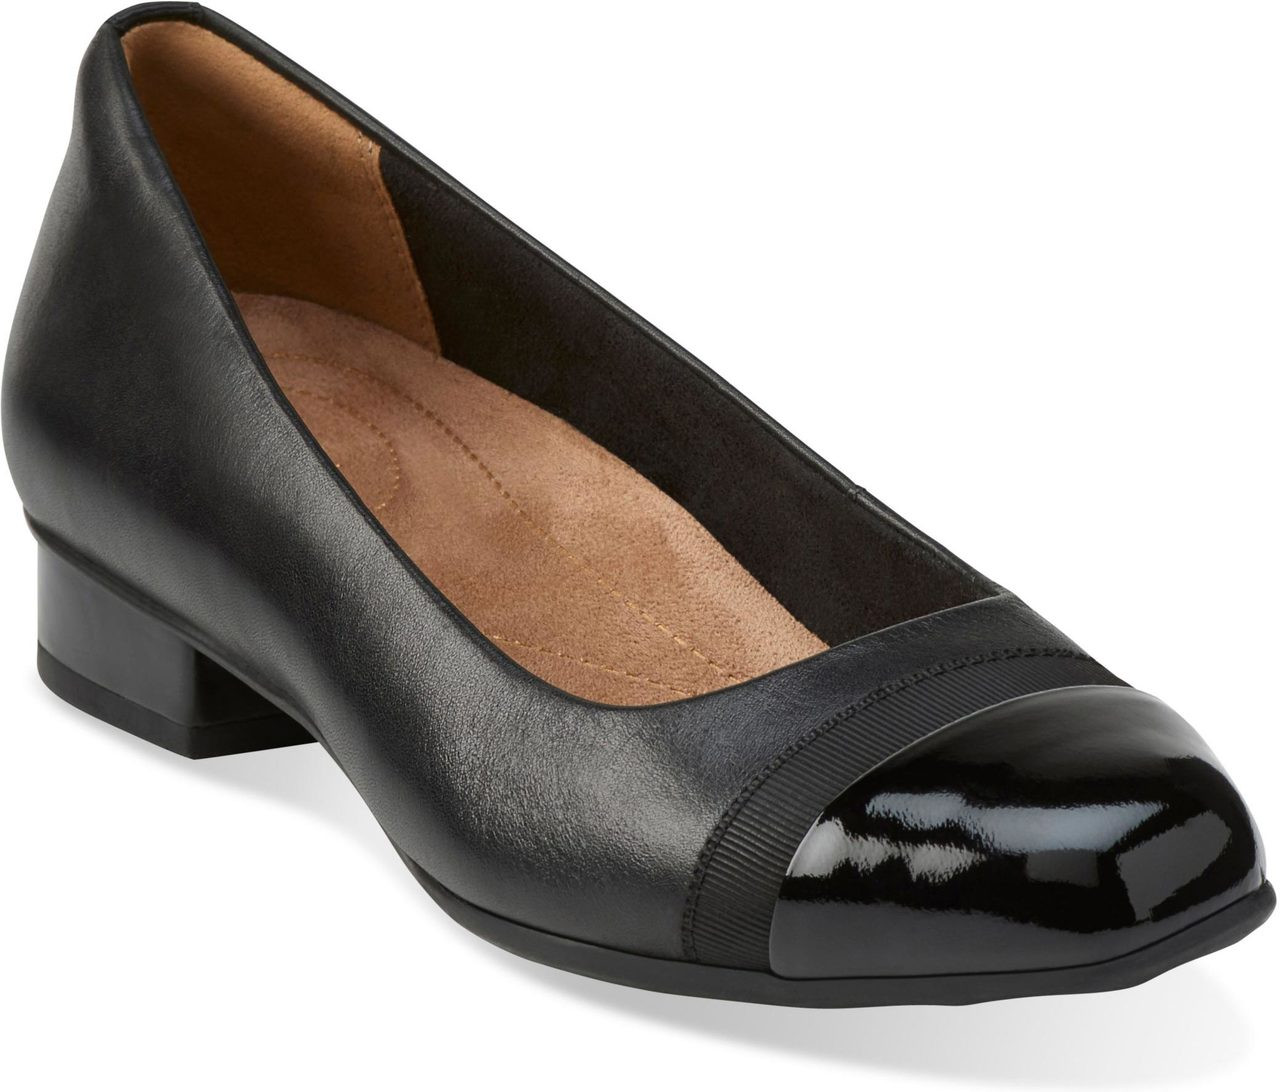 b1bbe2566e4 ... Clarks Women s Keesha Rosa. Aubergine Leather. Aubergine Leather  Black  Interest Nubuck Black Patent Leather Combi  Black Leather ...